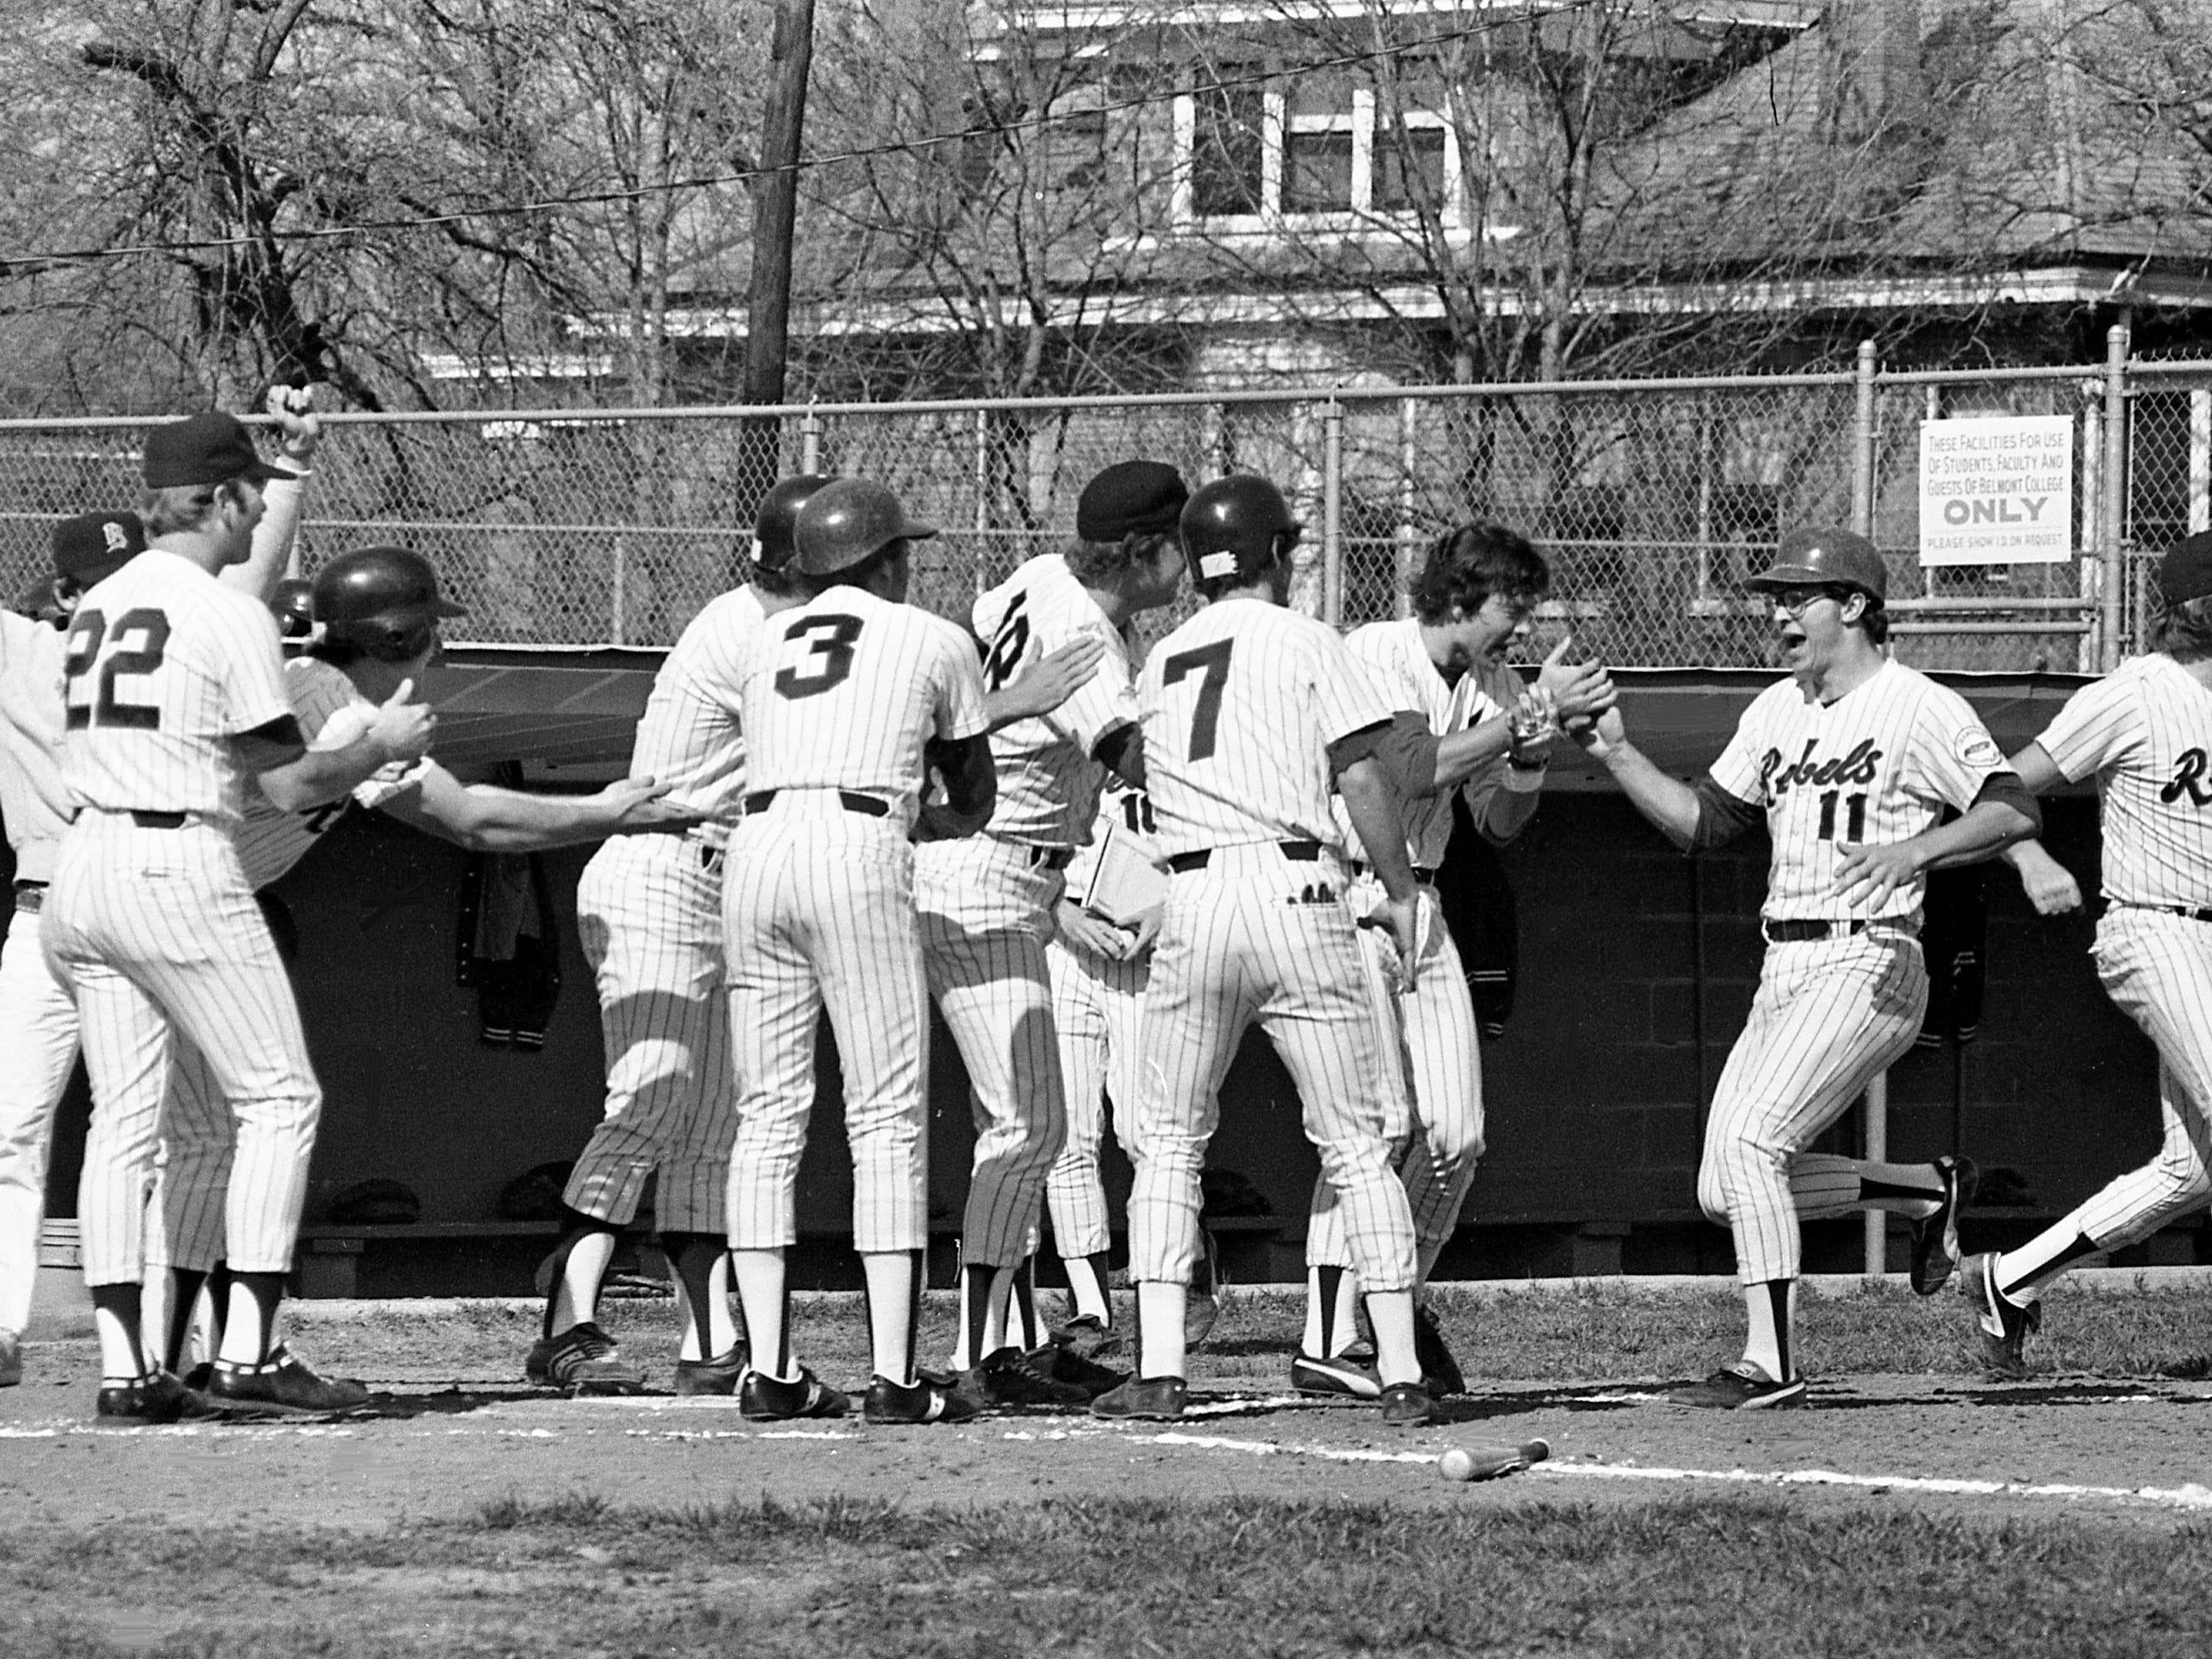 Belmont College catcher Charlie Crain (11) receives congratulations from his teammates after hitting a grand slam home run in the first inning of their 8-0 victory over city rival Trevecca College at Belmont on April 5, 1979.